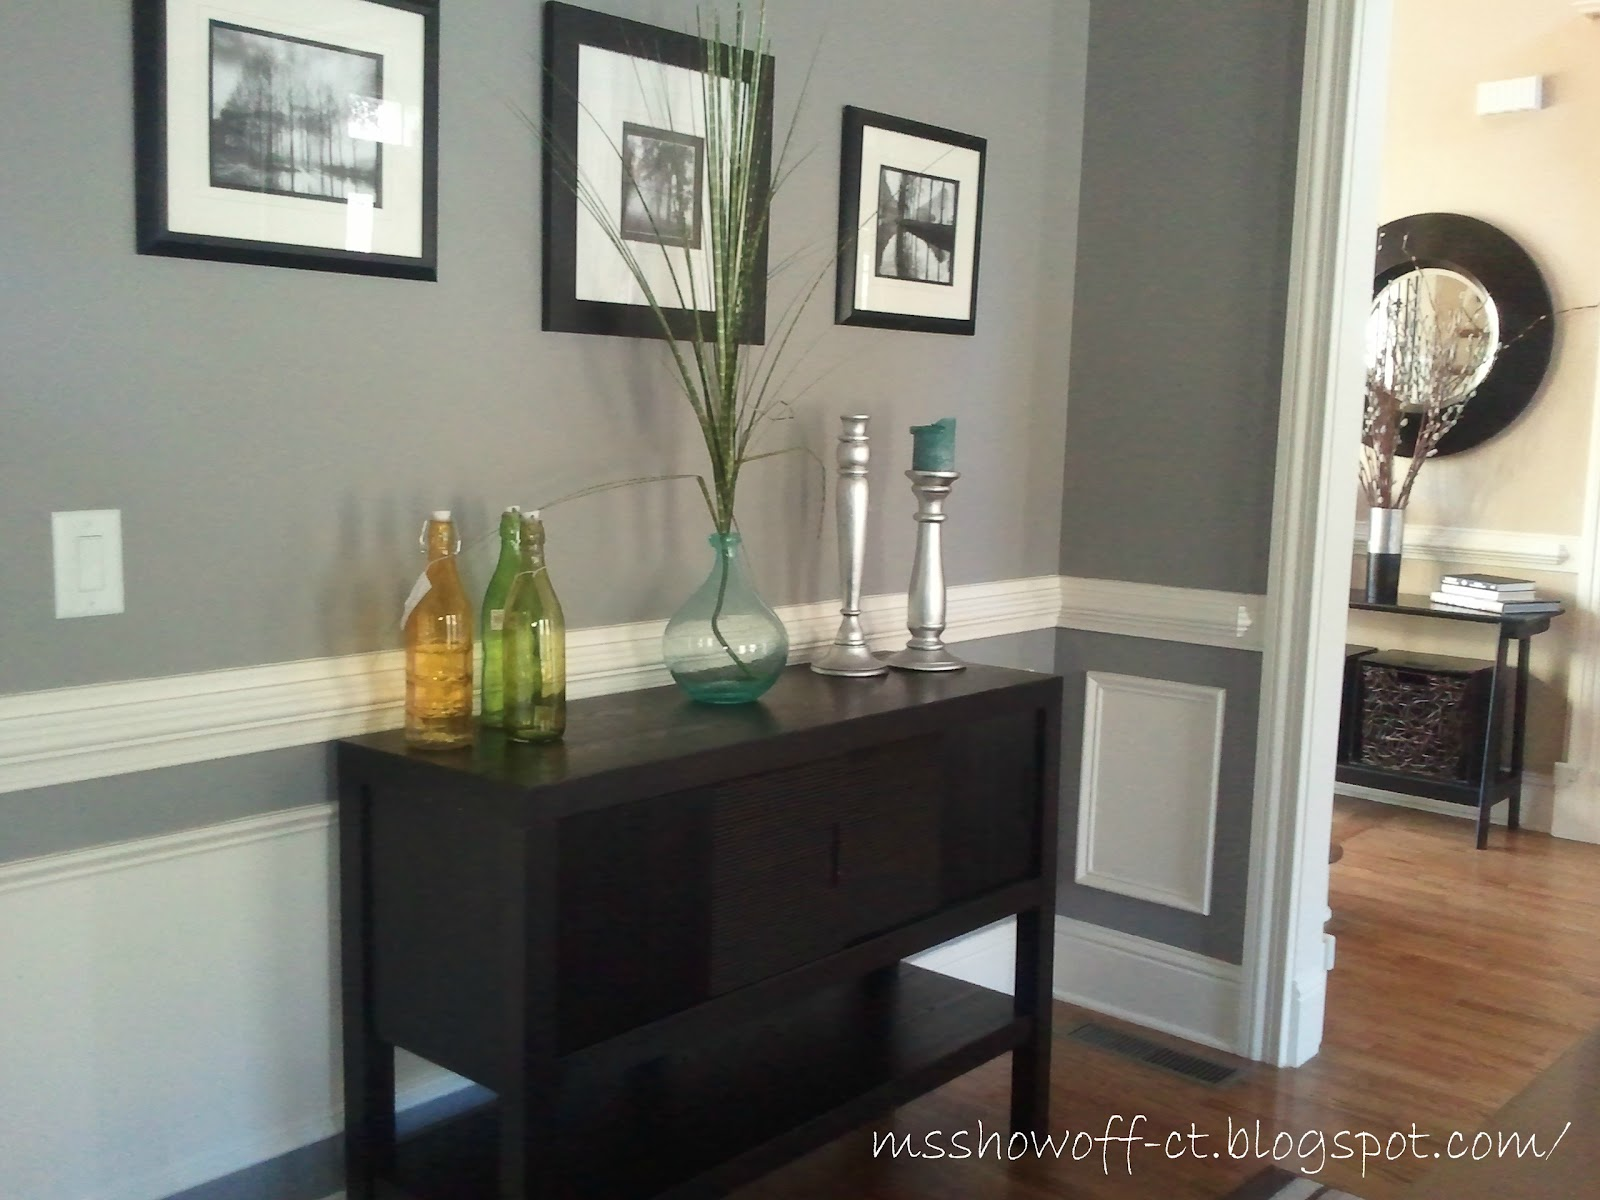 Martha Stewart Cement Gray Paint : Show off christmas touches round here